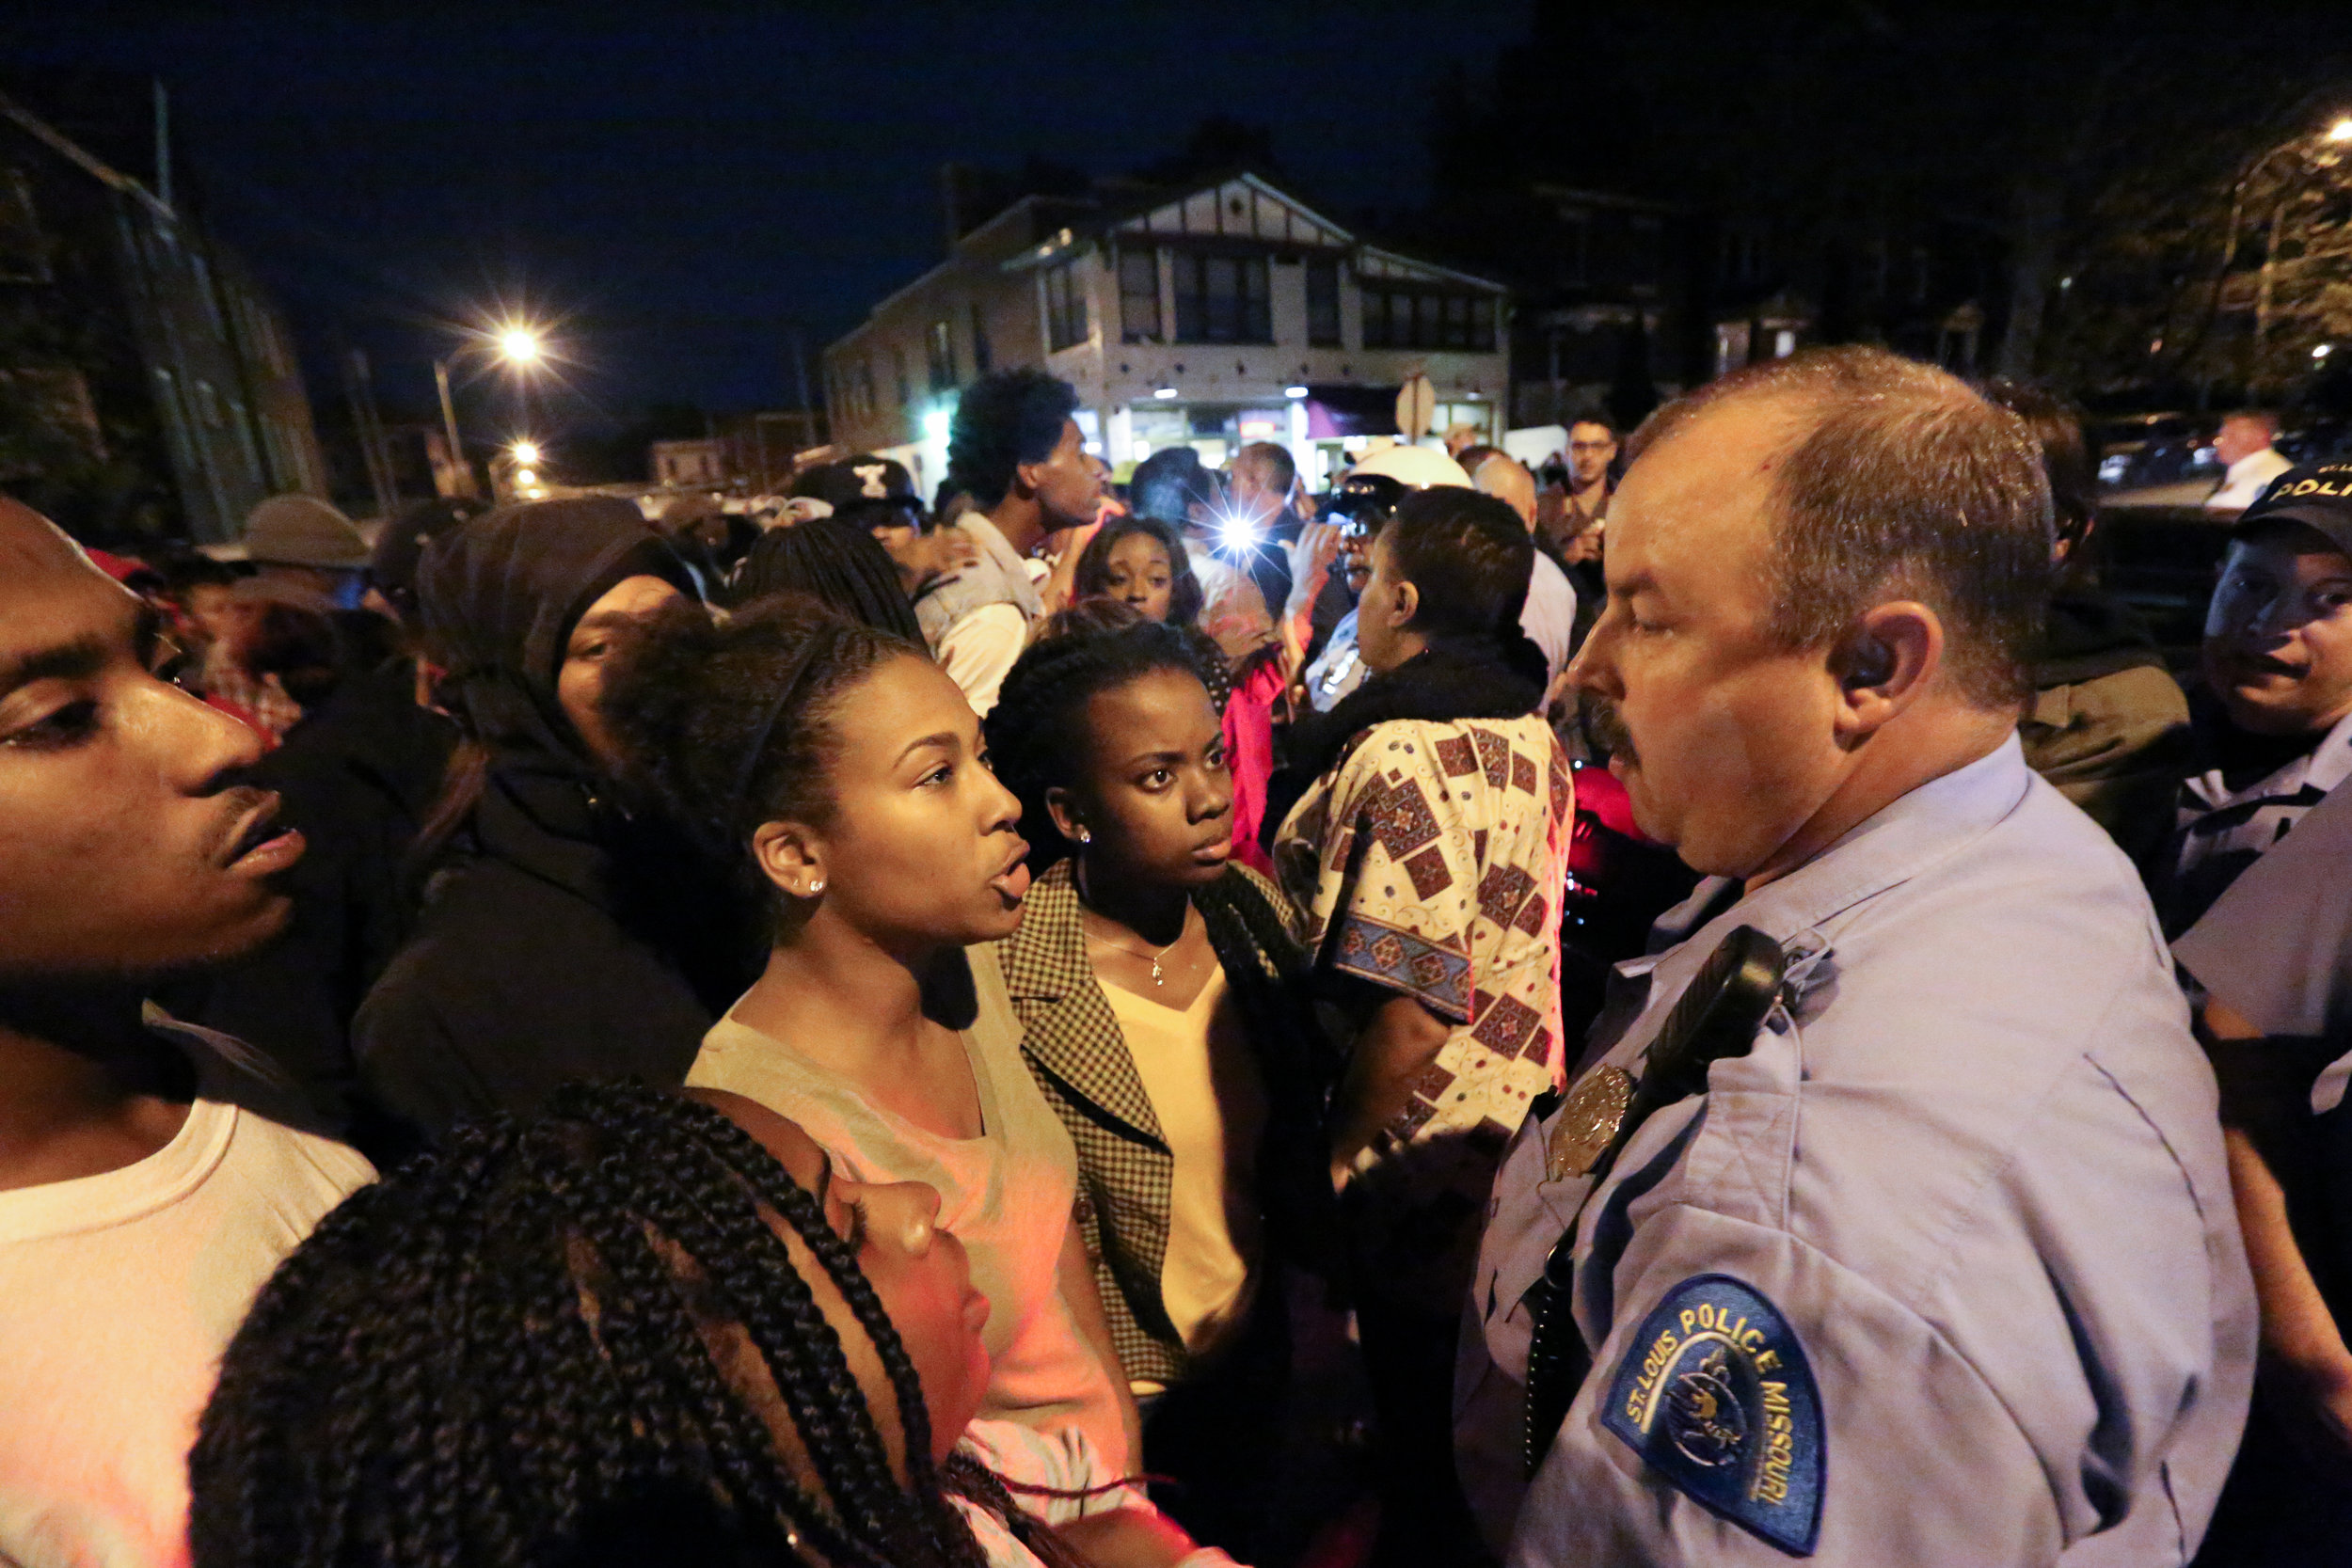 Alexis (left) and Brittany confront a police officer as the vigil for Vonderrit Myers Jr. is interrupted with an order to disperse.